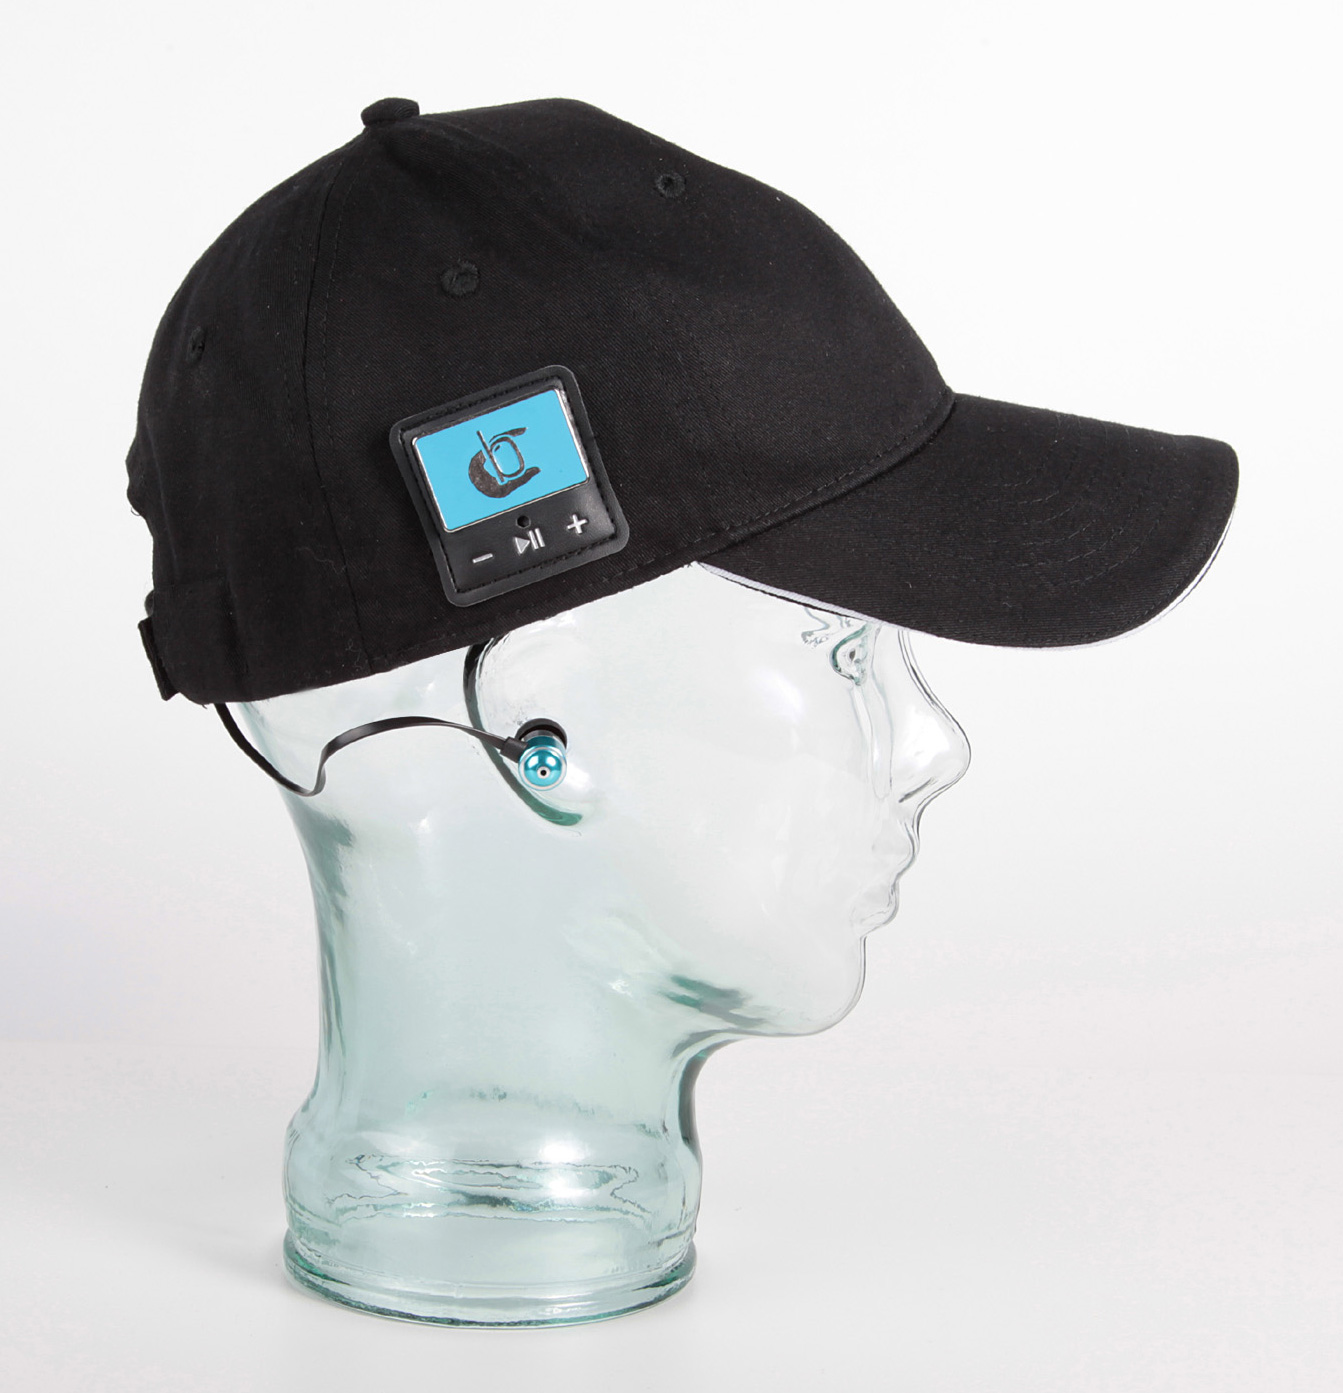 Click to Buy a Bluetooth Baseball Cap